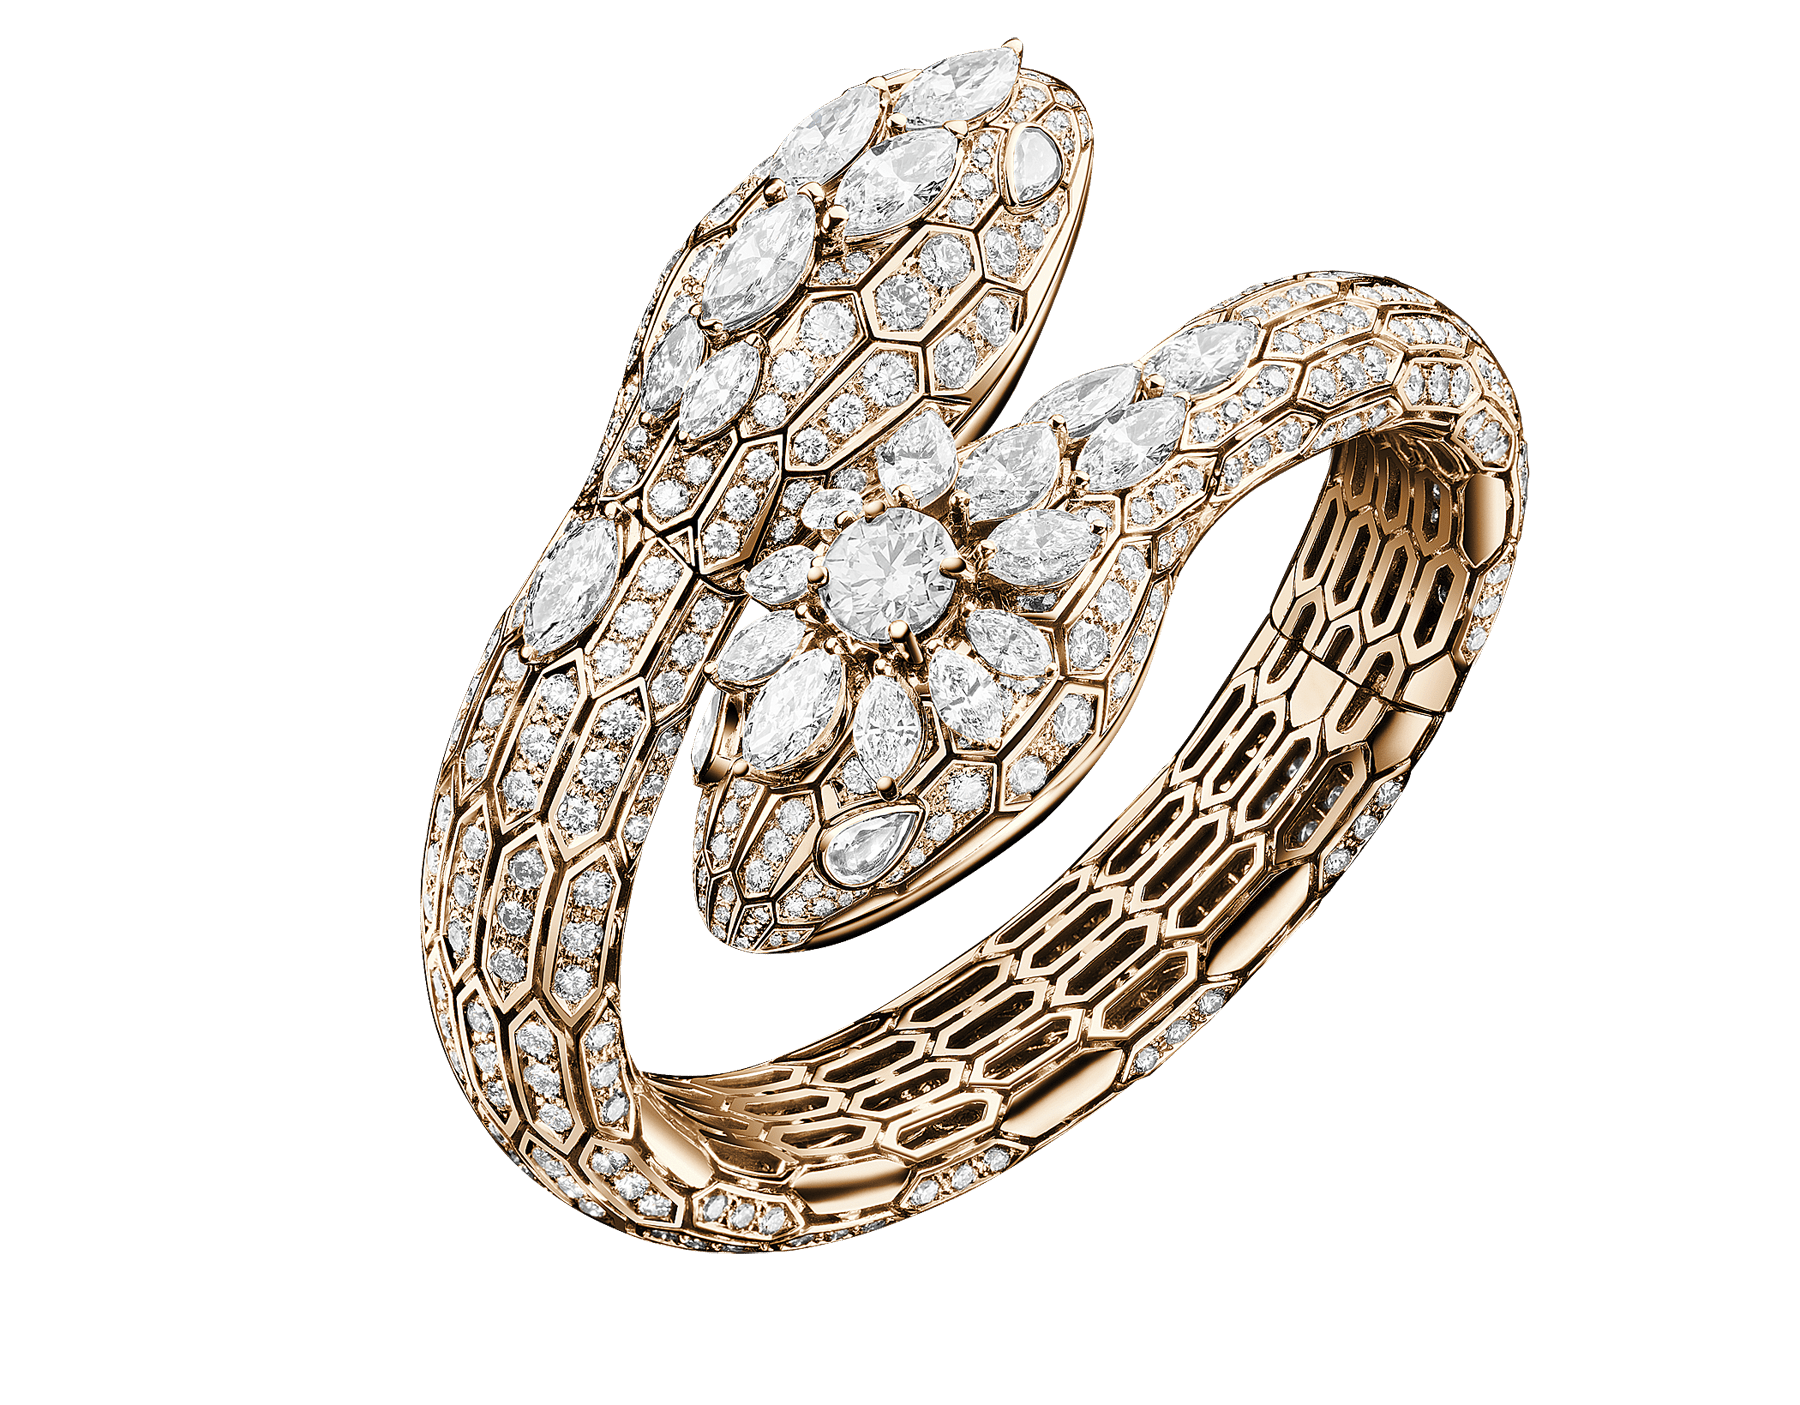 Serpenti Secret Watch with two 18 kt rose gold heads set with round brilliant-cut and marquise-shaped diamonds, one round brilliant-cut diamond and pear-shaped diamond eyes, 18 kt rose gold case and 18 kt rose gold bracelet set with brilliant-cut diamonds 102816 image 1